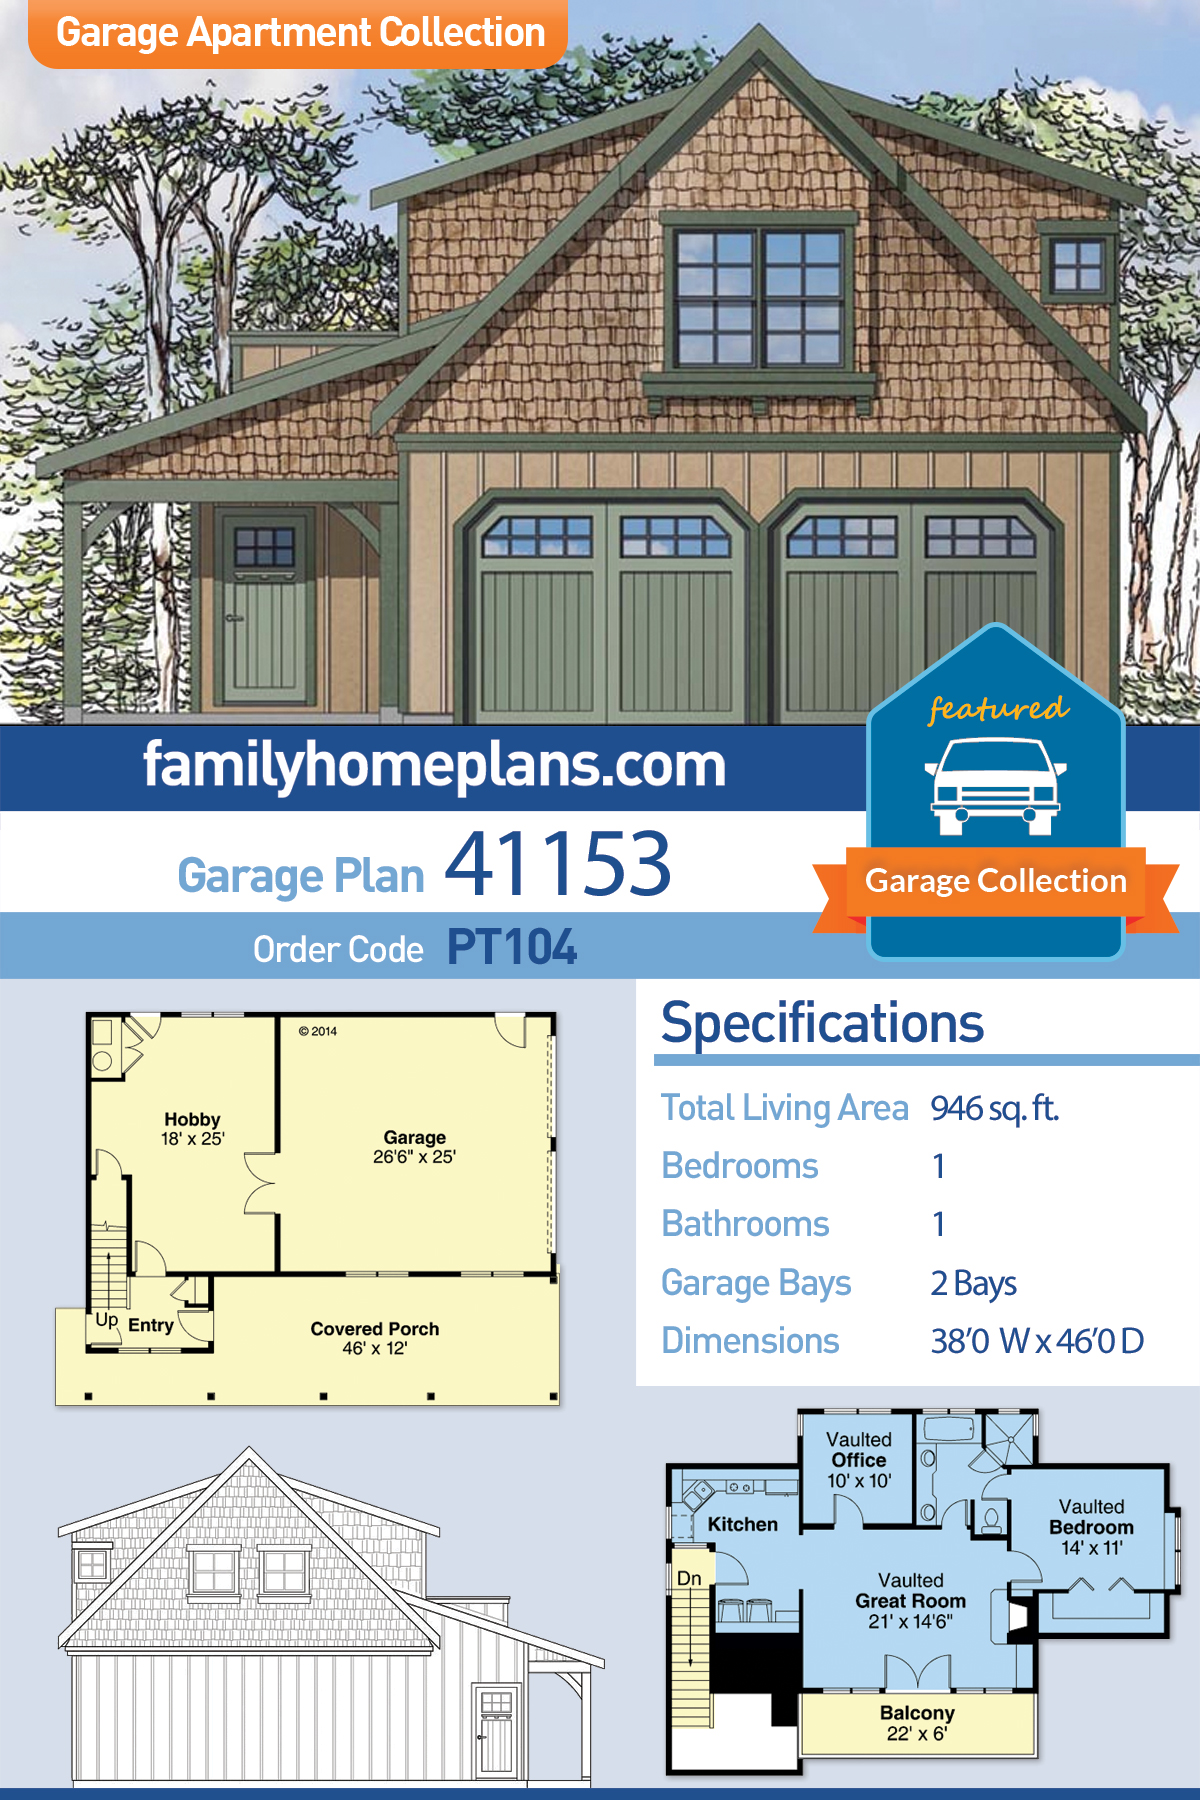 Craftsman 2 Car Garage Apartment Plan 41153 with 1 Beds, 1 Baths